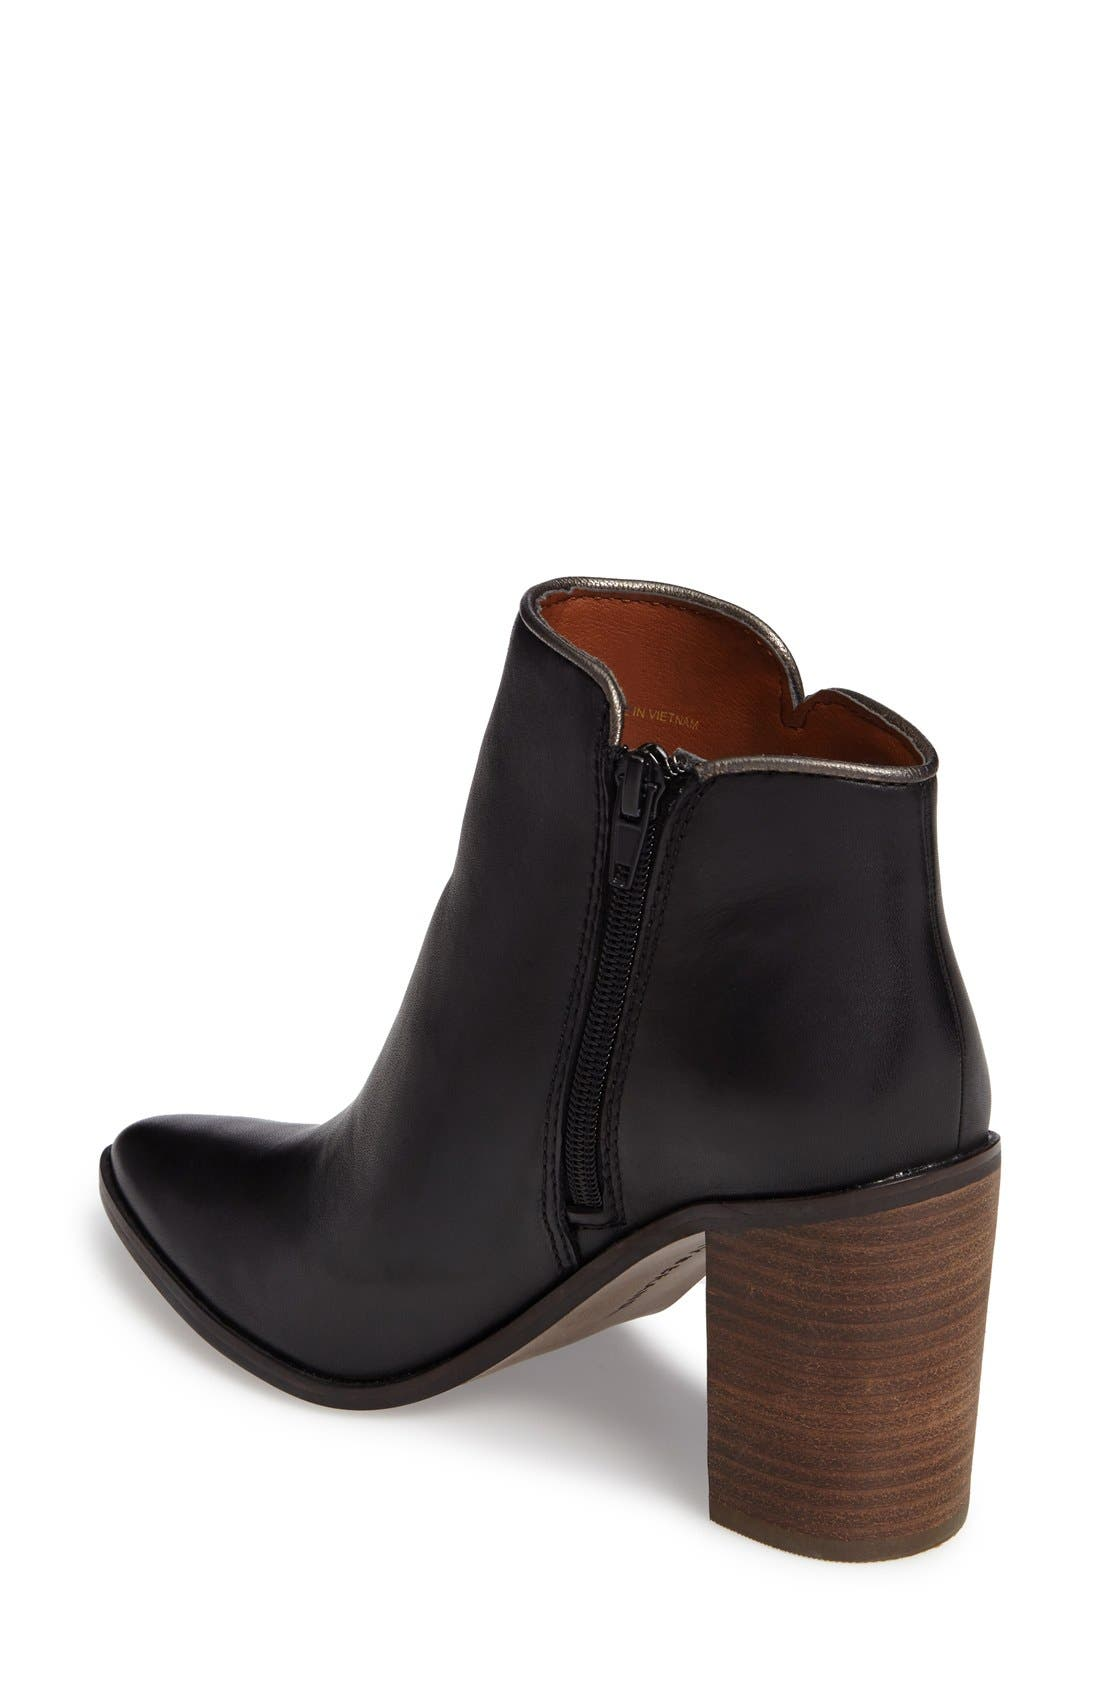 Mytah Pointy Toe Bootie,                             Alternate thumbnail 2, color,                             Black Leather